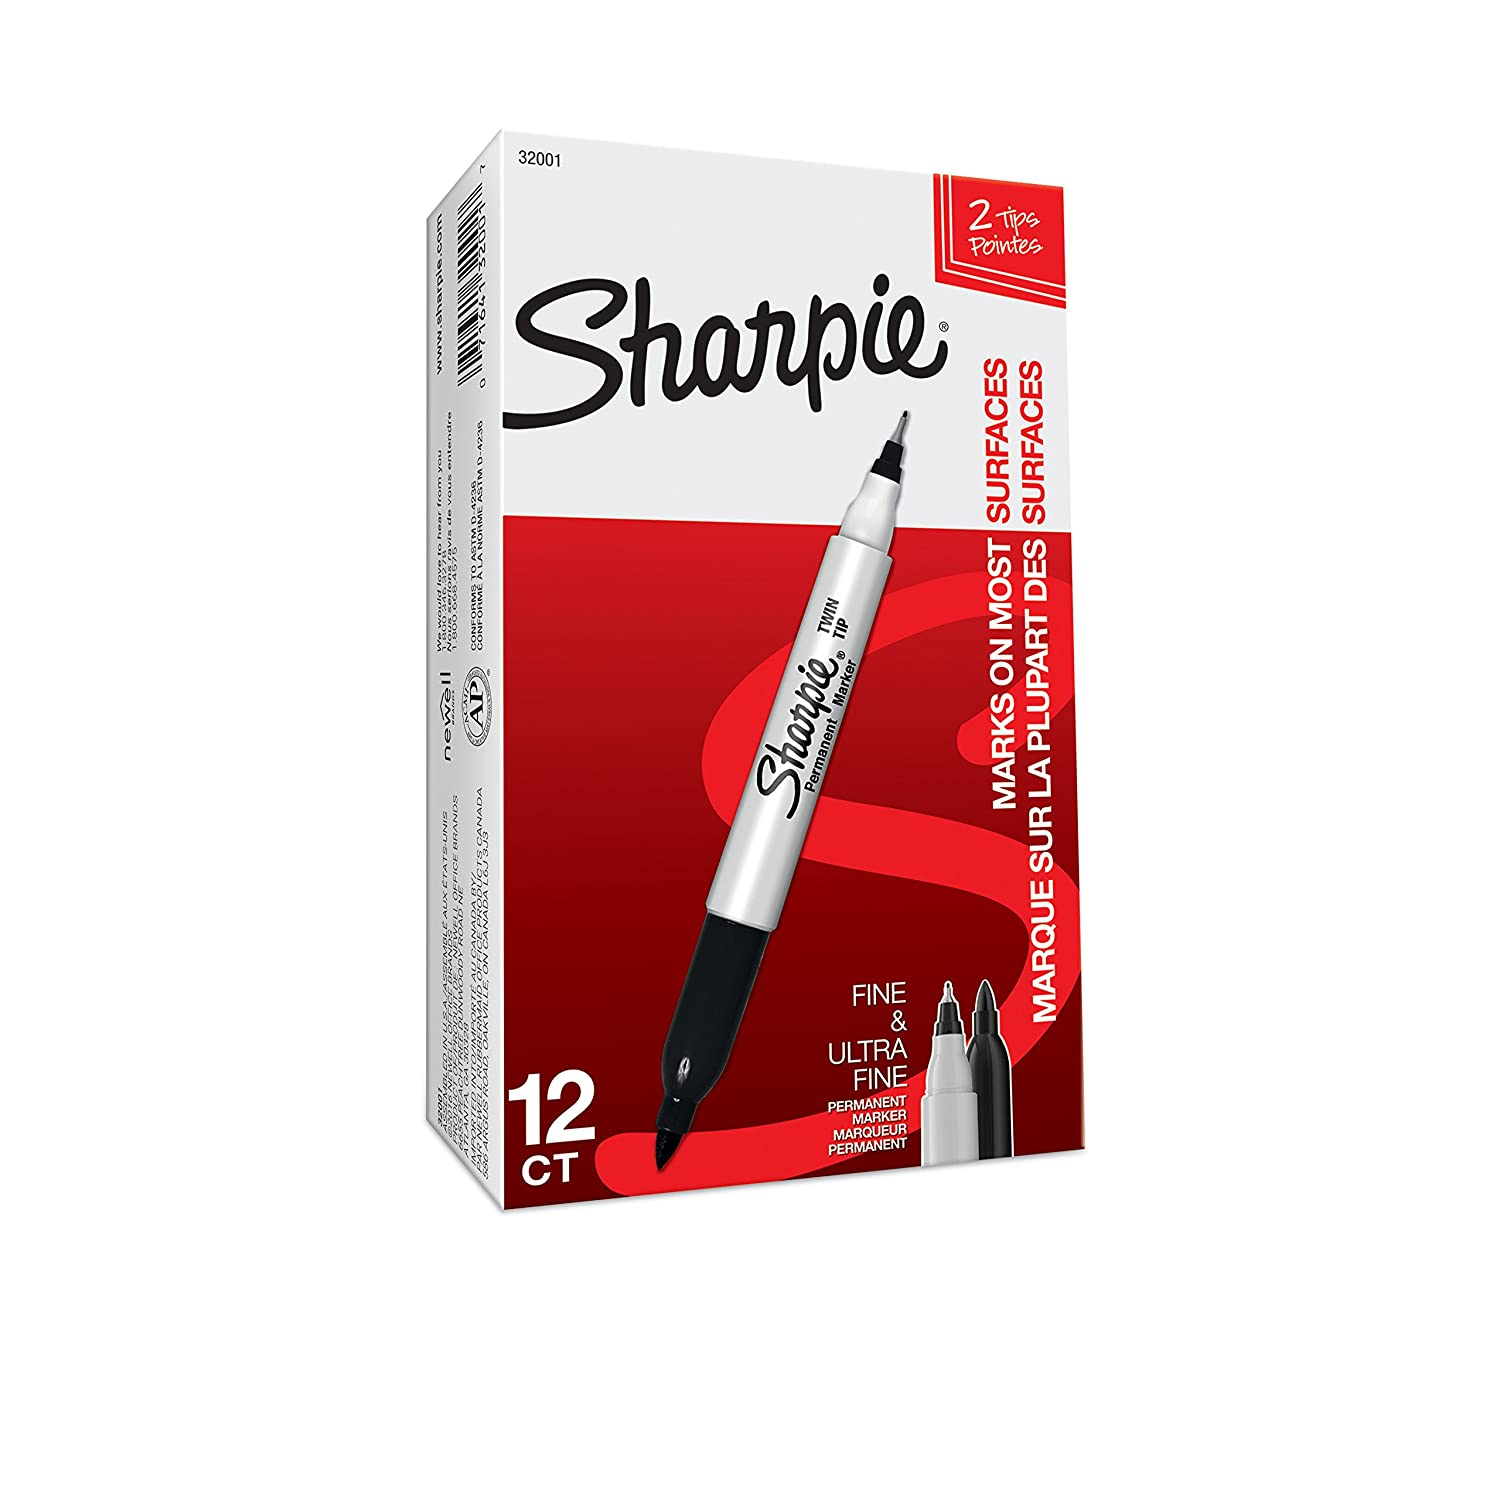 MADE IN USA Sharpie Sharpie Twin Tip Permanent Marker 32000 Model